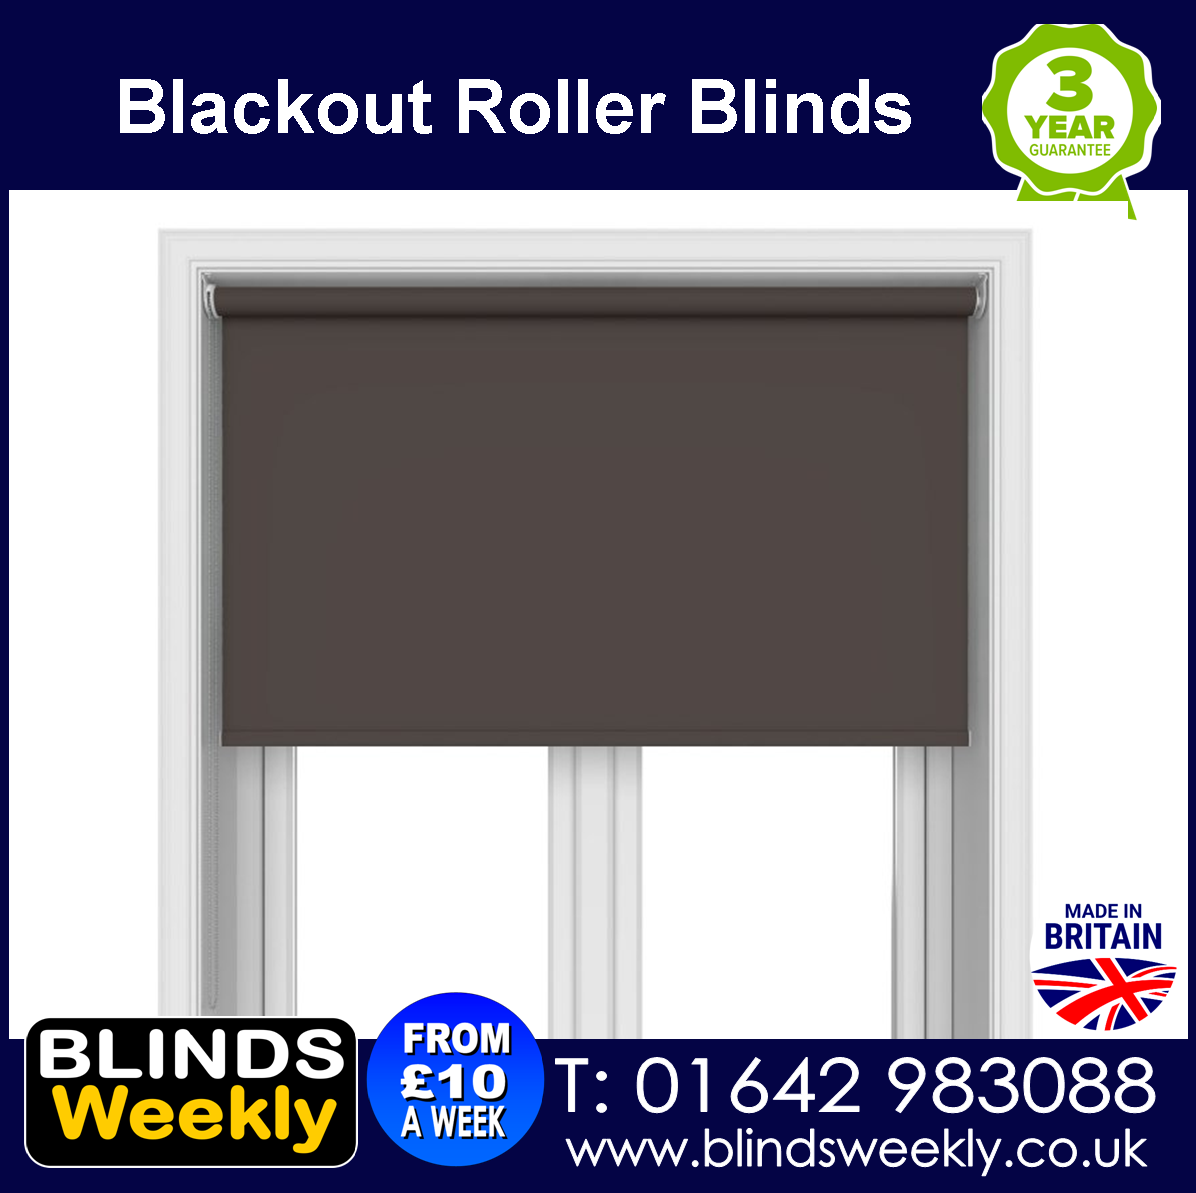 Blackout roller blinds from Blinds weekly Tel 01642 983088